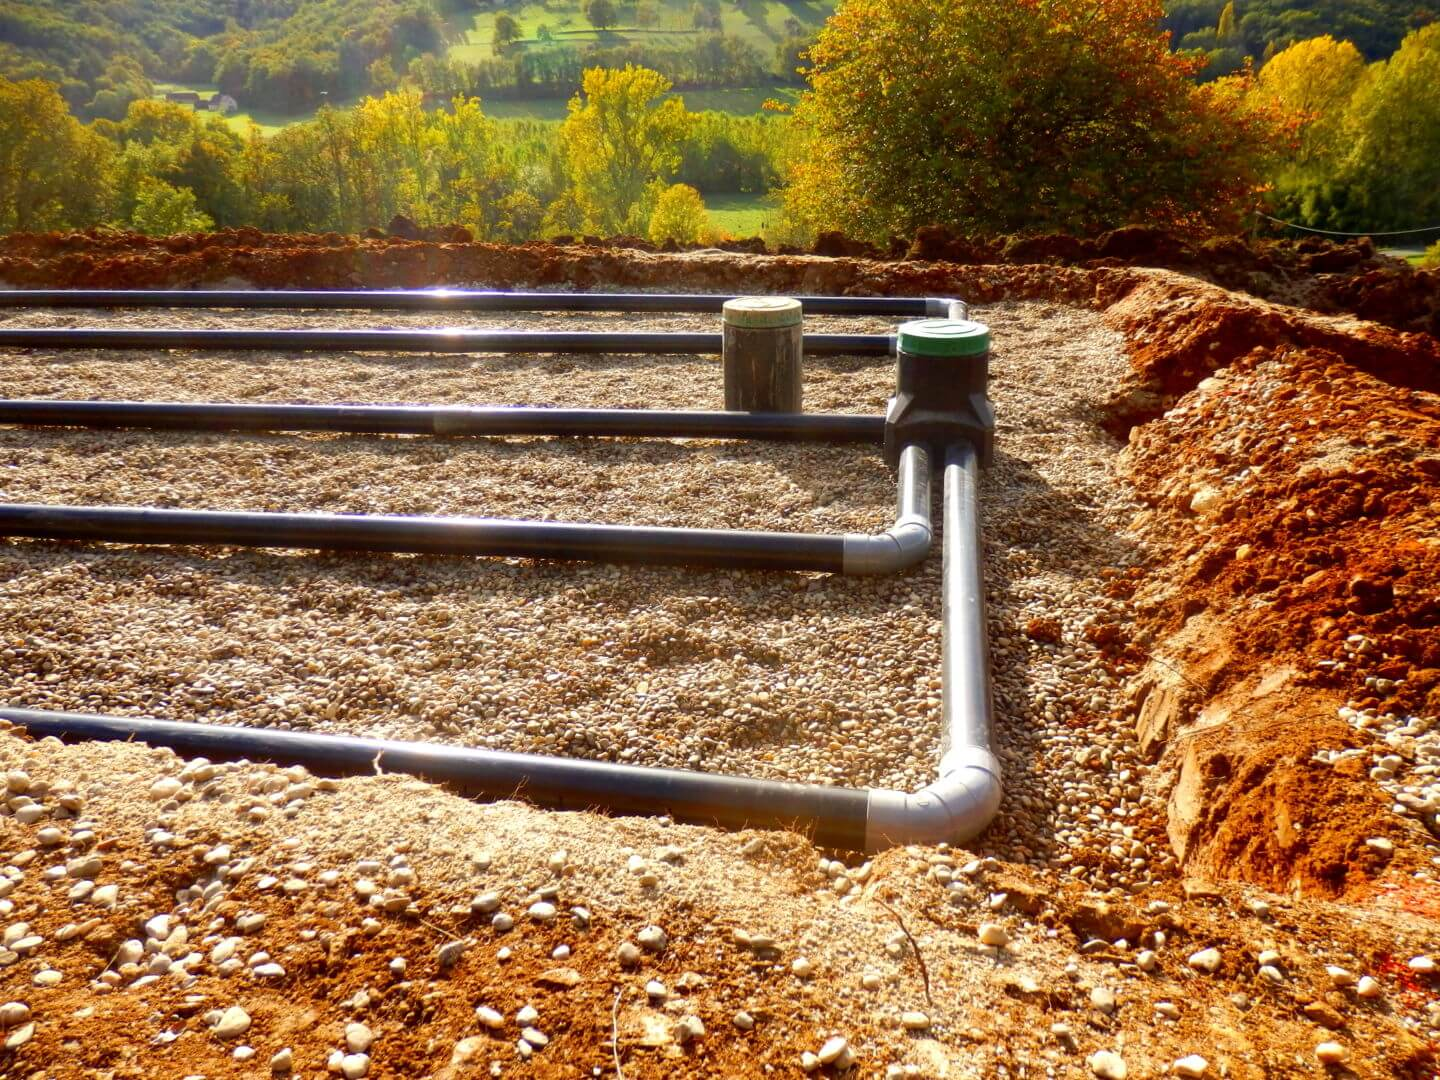 Municipal and Community Septic Systems-Roanoke Septic Tank Services, Installation, & Repairs-We offer Septic Service & Repairs, Septic Tank Installations, Septic Tank Cleaning, Commercial, Septic System, Drain Cleaning, Line Snaking, Portable Toilet, Grease Trap Pumping & Cleaning, Septic Tank Pumping, Sewage Pump, Sewer Line Repair, Septic Tank Replacement, Septic Maintenance, Sewer Line Replacement, Porta Potty Rentals